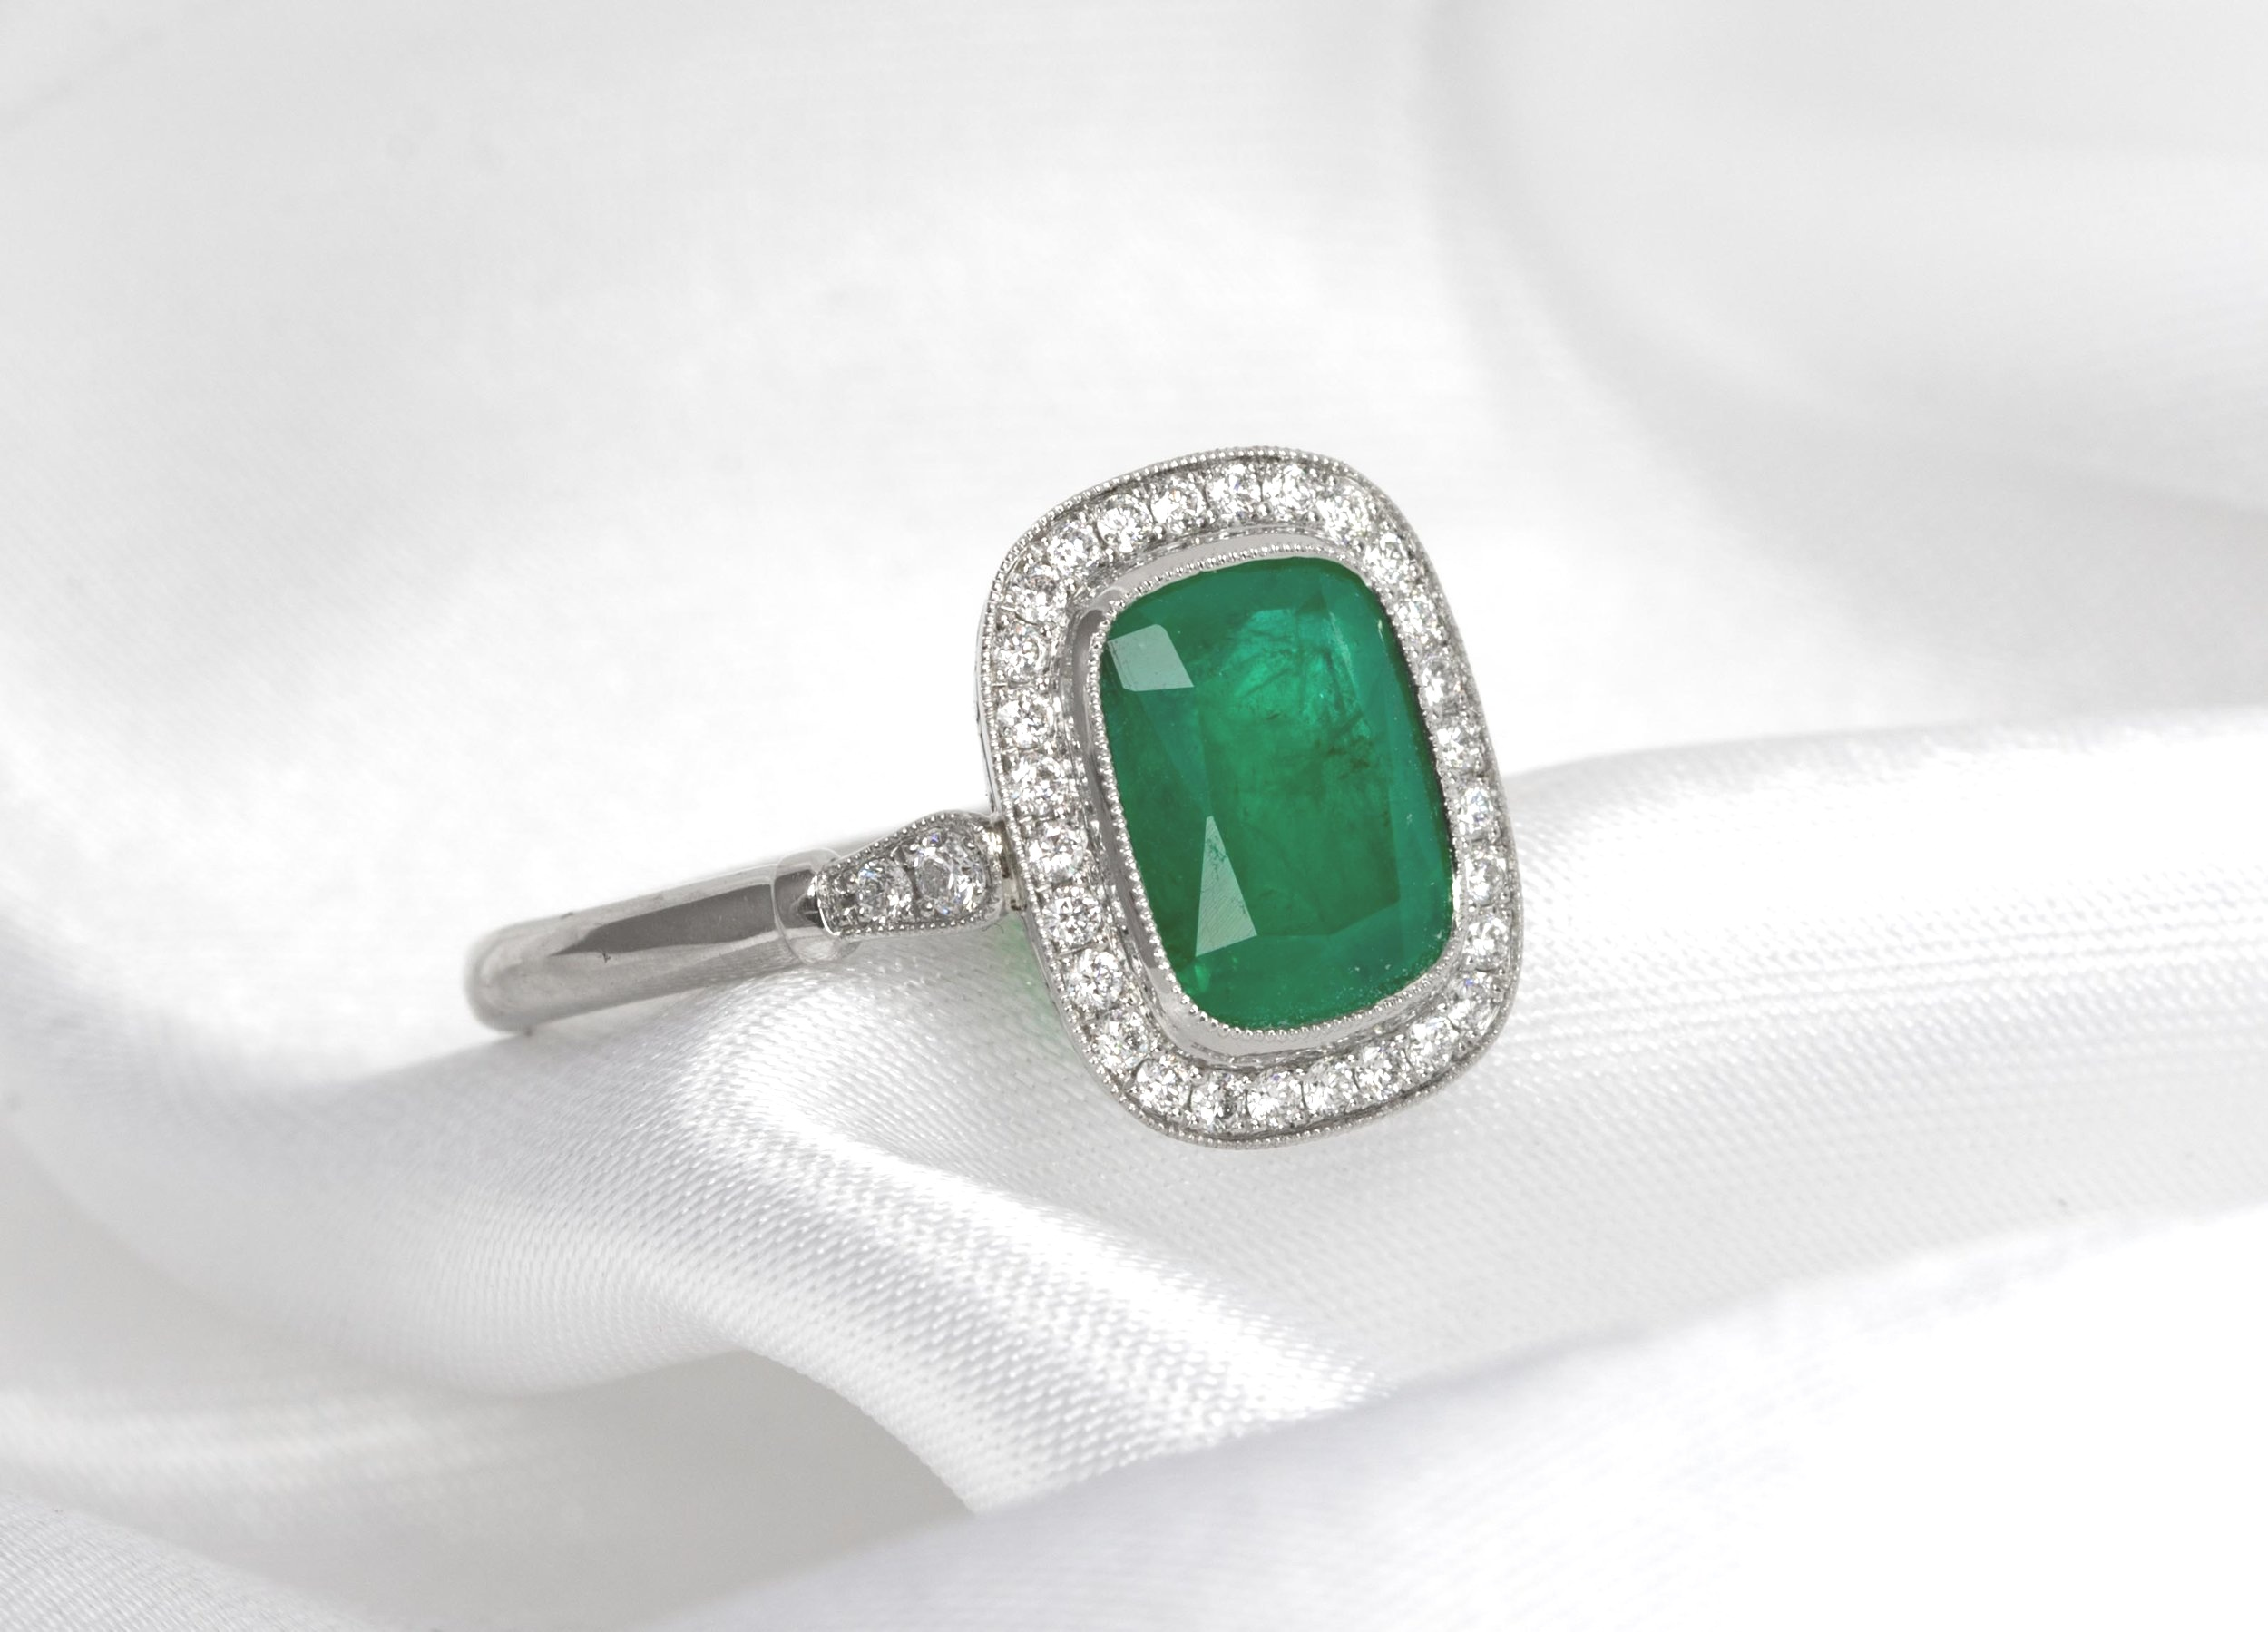 Oblong cushion cut emerald and diamond 1920's style cluster ring with millegrain edge decoration. Made in Chichester, England